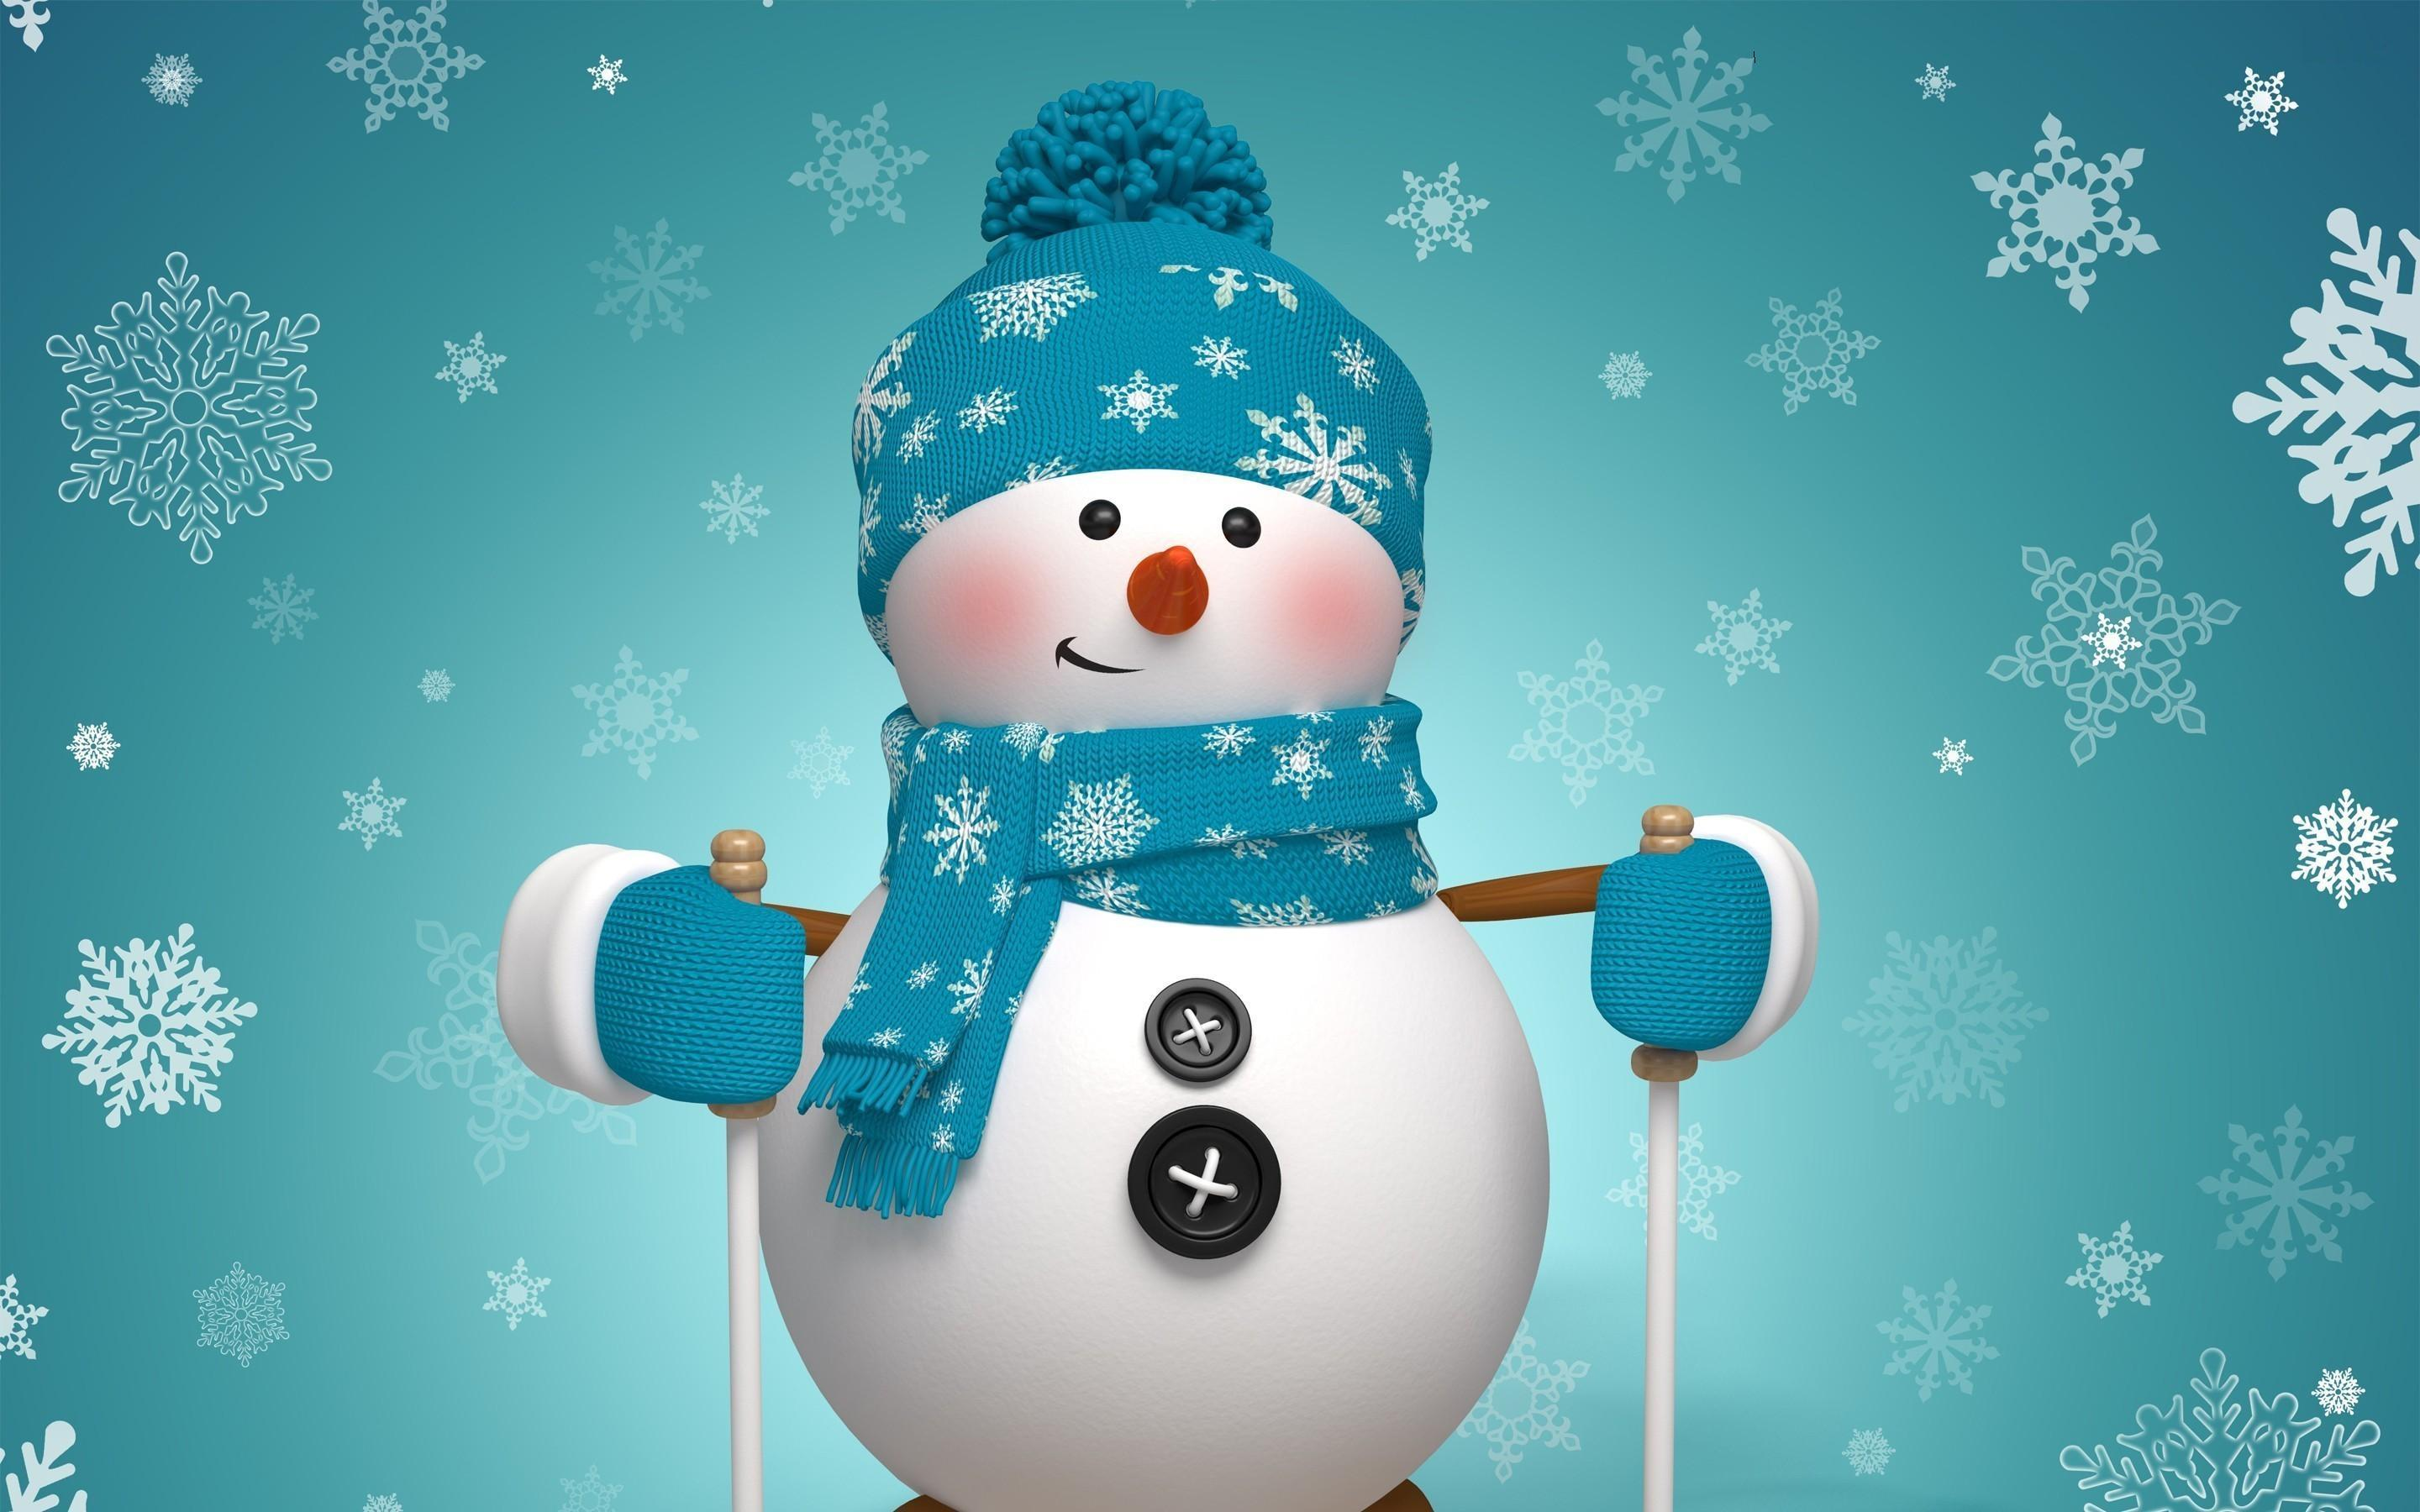 Free Snowman Wallpapers - Wallpaper Cave